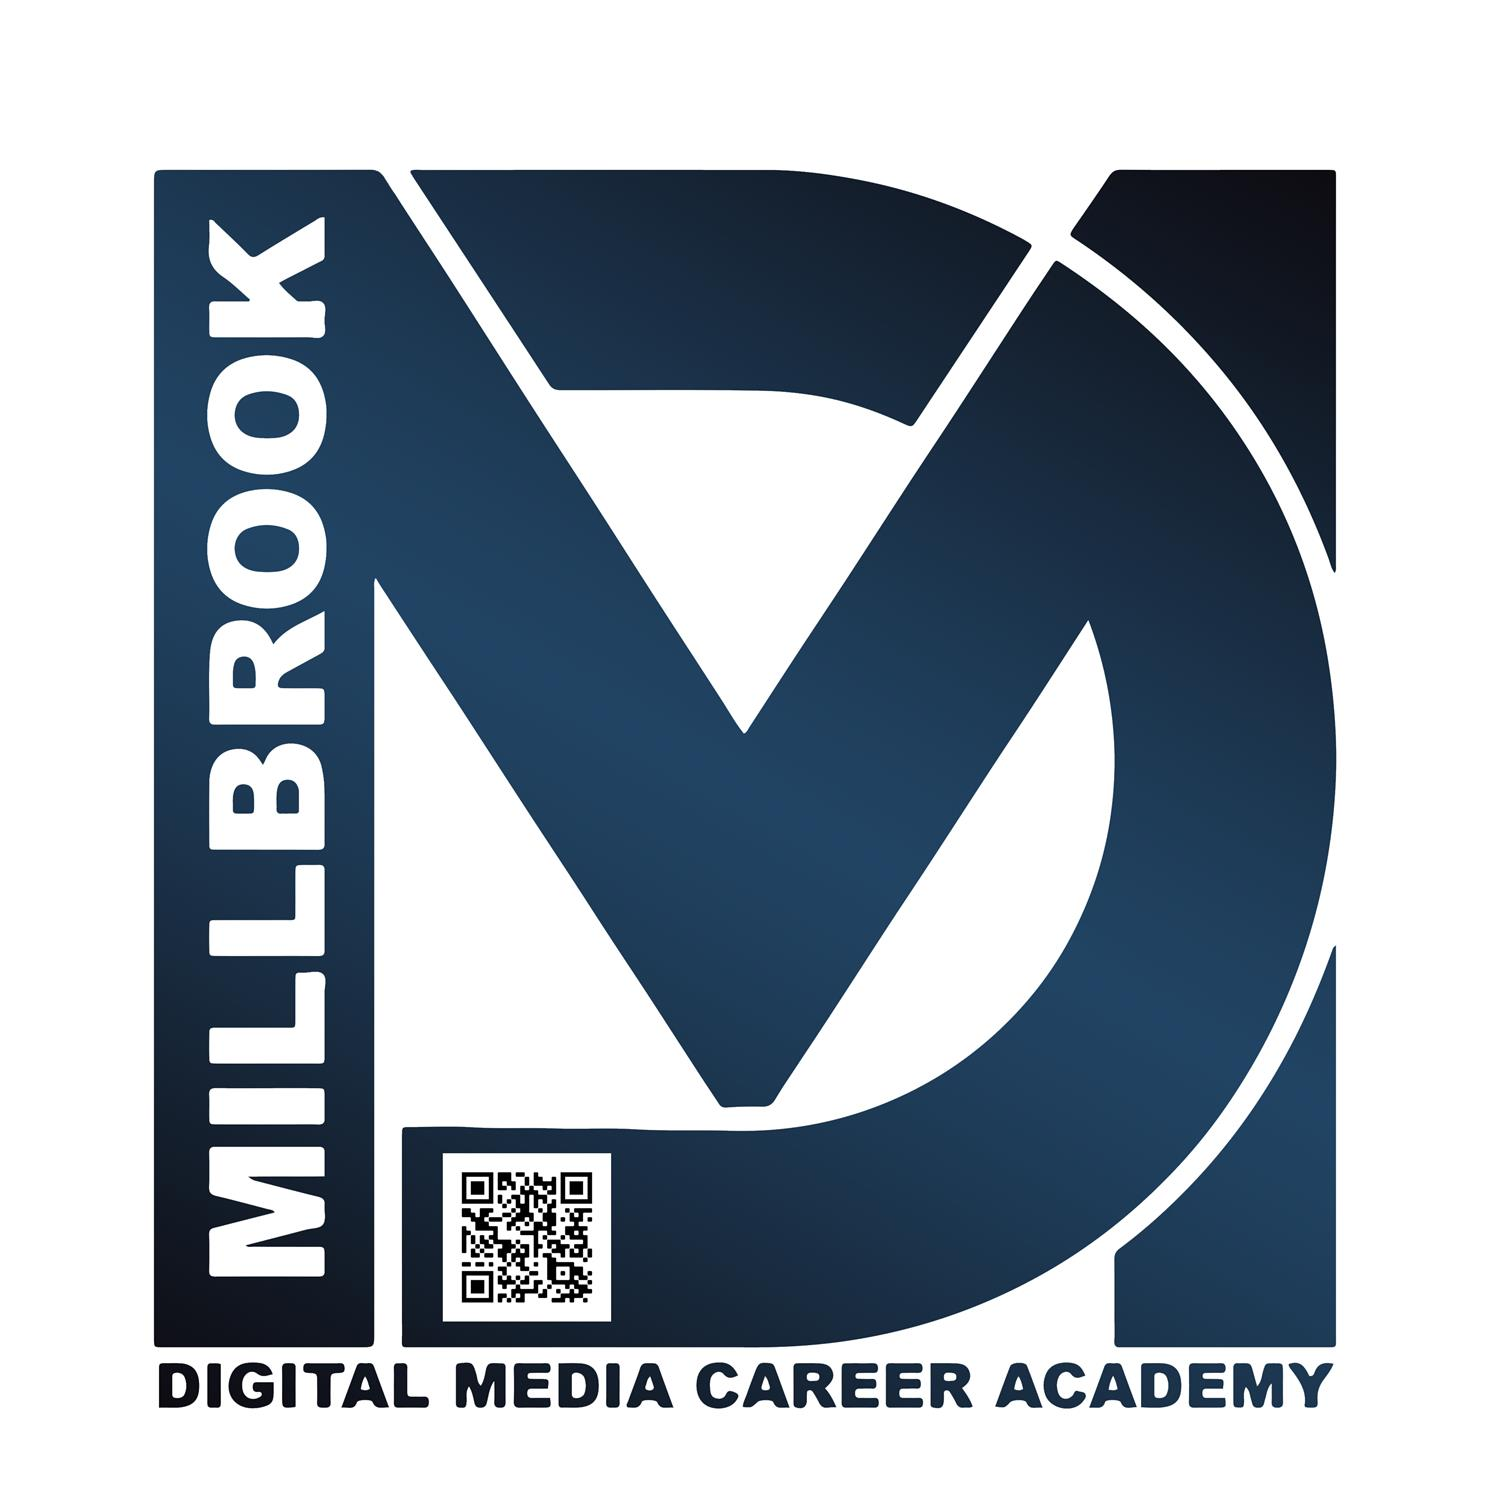 Digital Media Career Academy